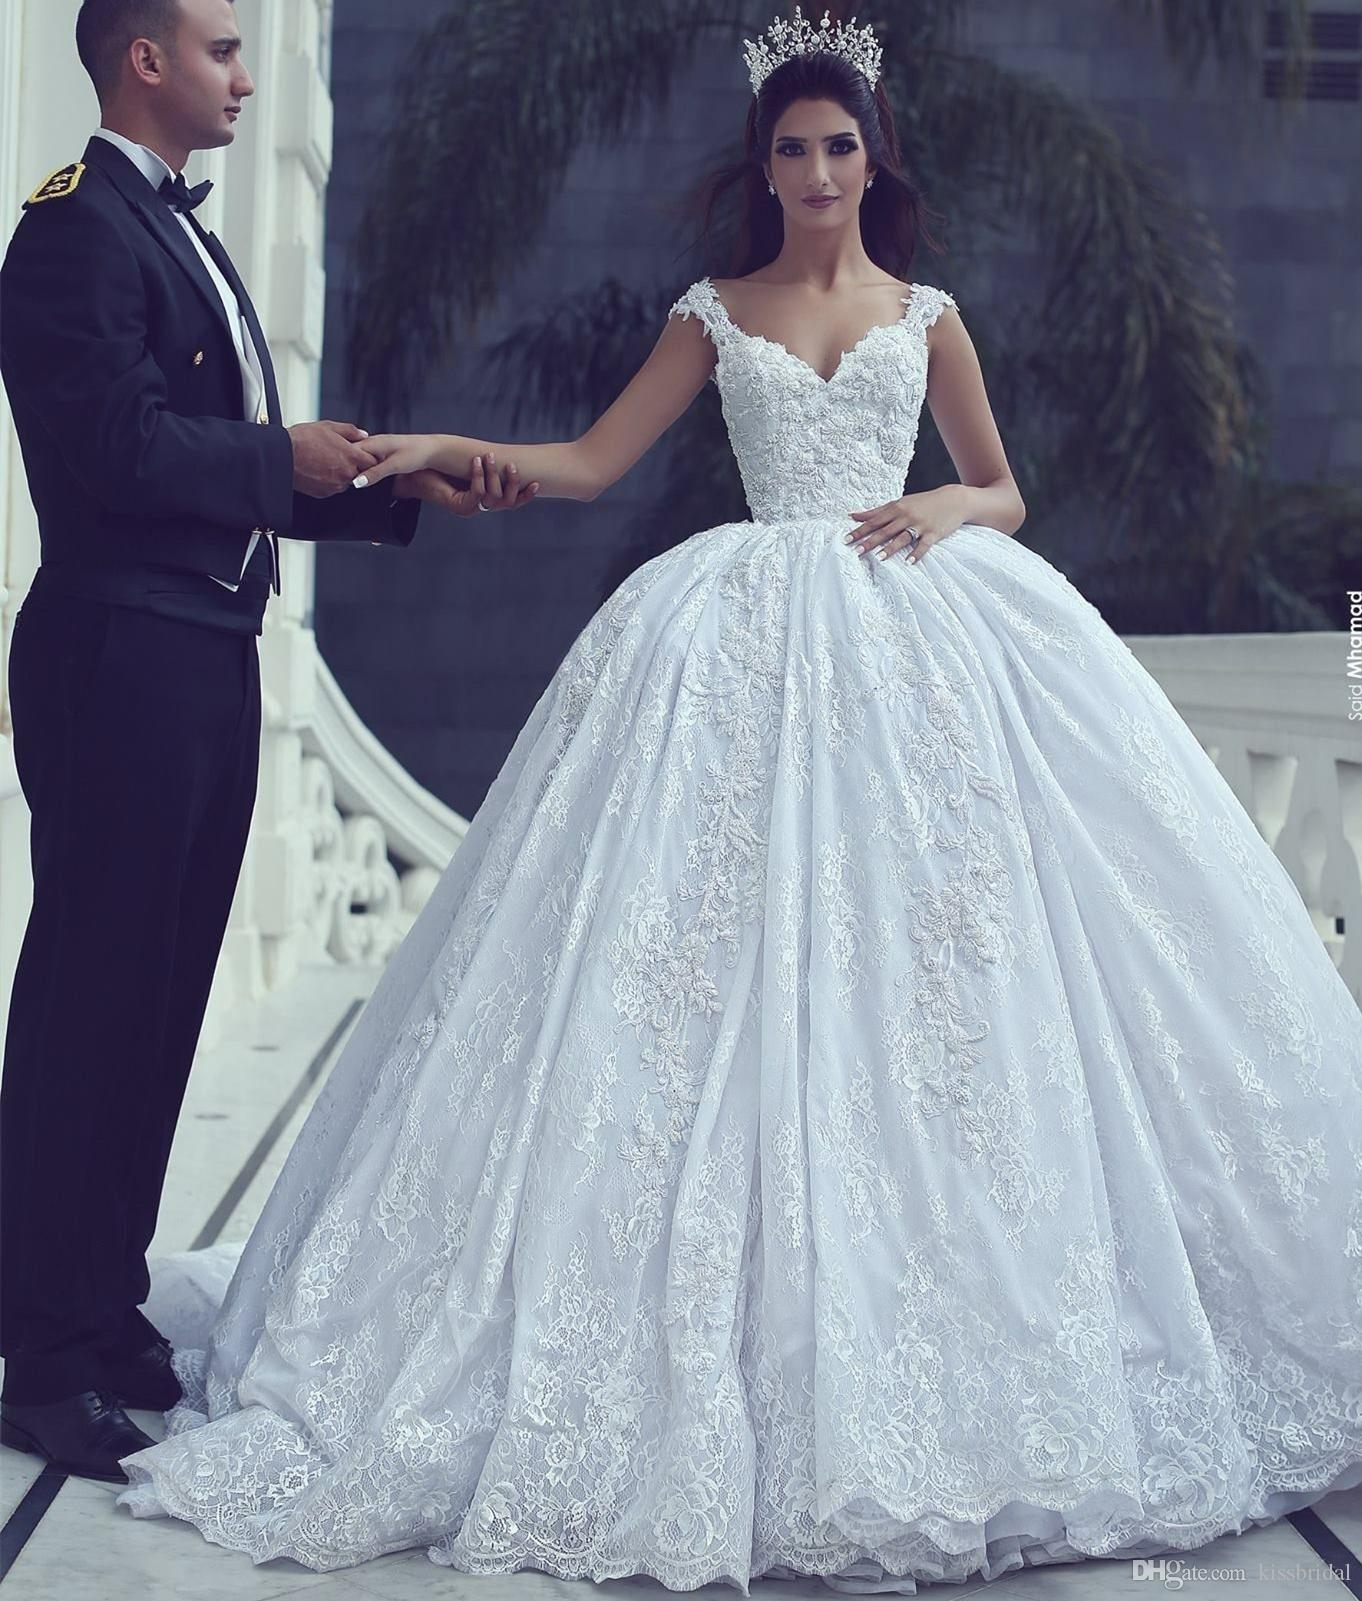 2dafa6ec6d8 Princess Ball Gown Wedding Dresses 2019 Lace Appliques Bridal Gowns With  Chapel Long Train Formal Dress For Bride With No Veil Grecian Style Wedding  Dresses ...